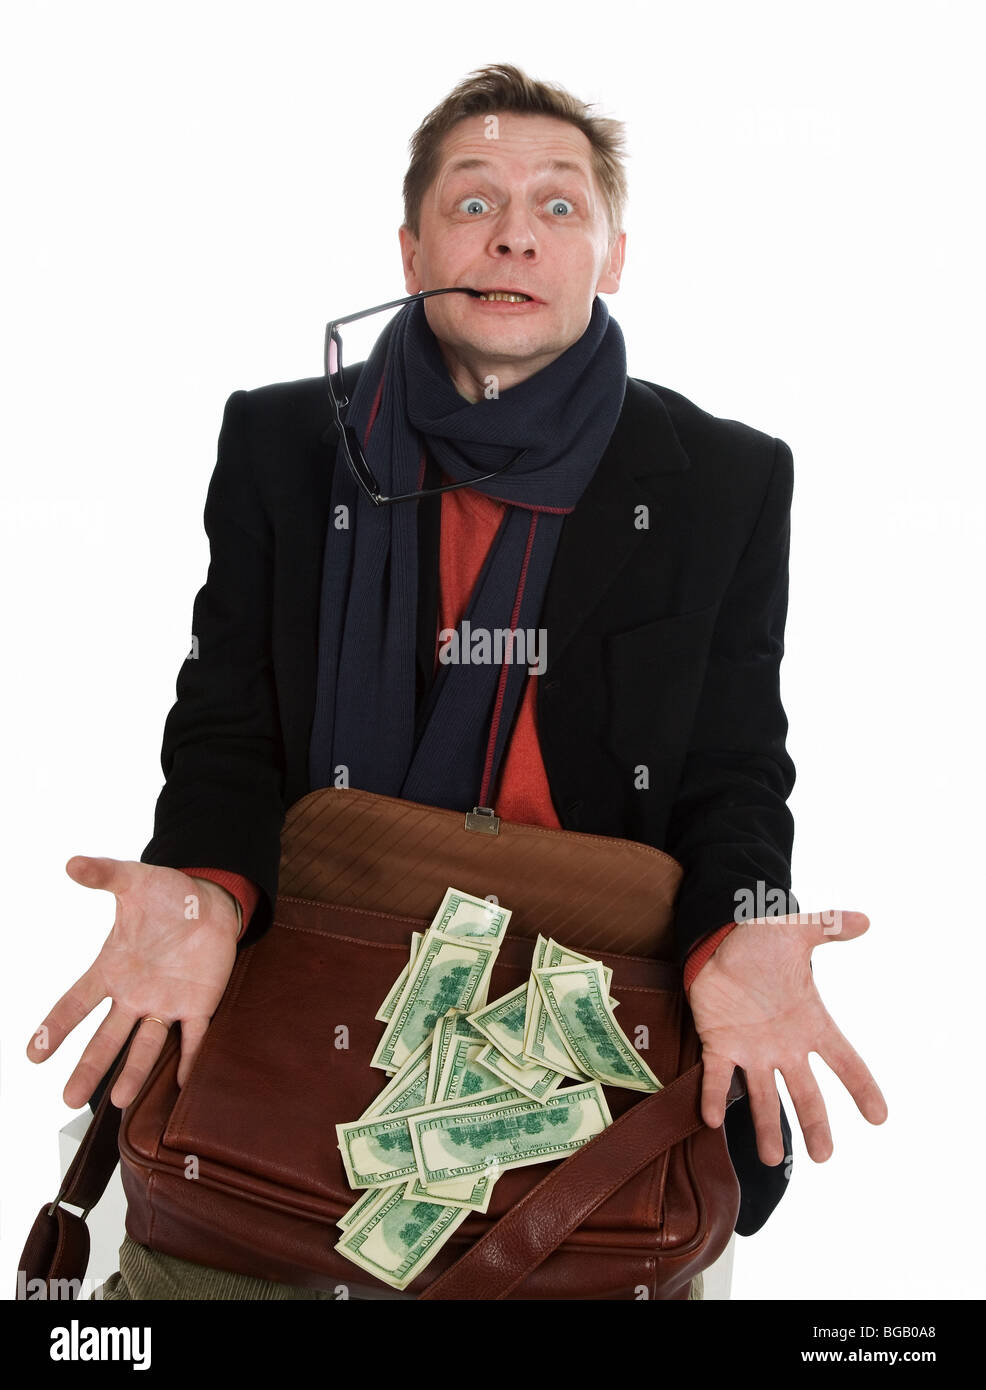 Tricky and greedy man with lots of cash on a white background - Stock Image